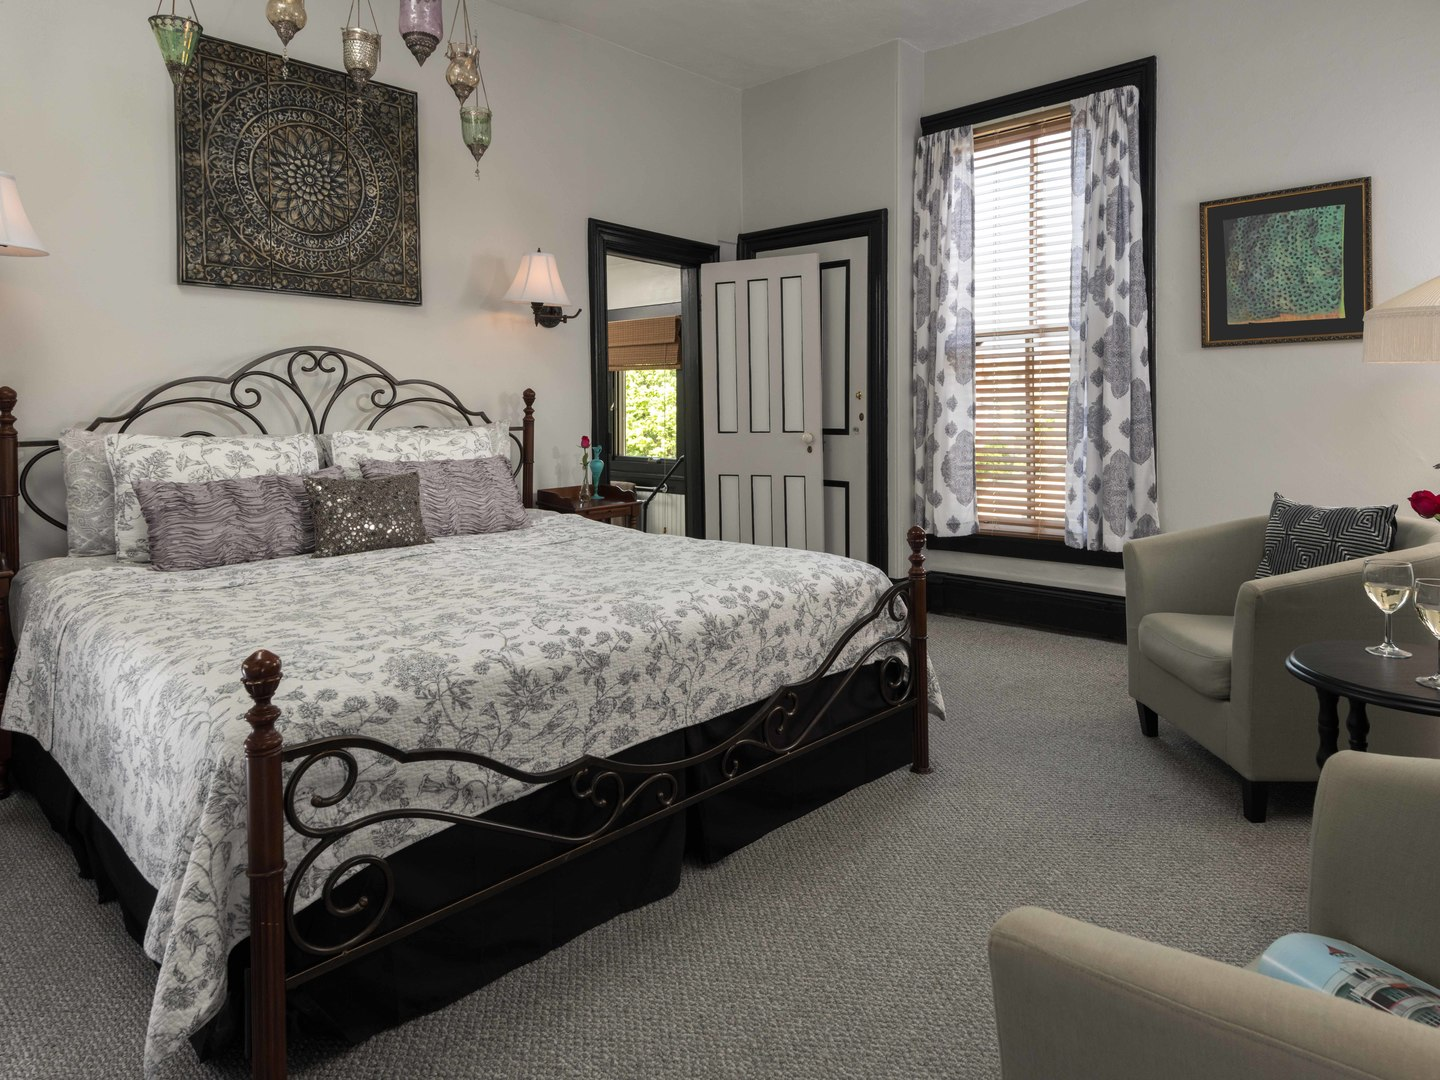 A bedroom with a bed and desk in a hotel room at Mooring Bed & Breakfast.